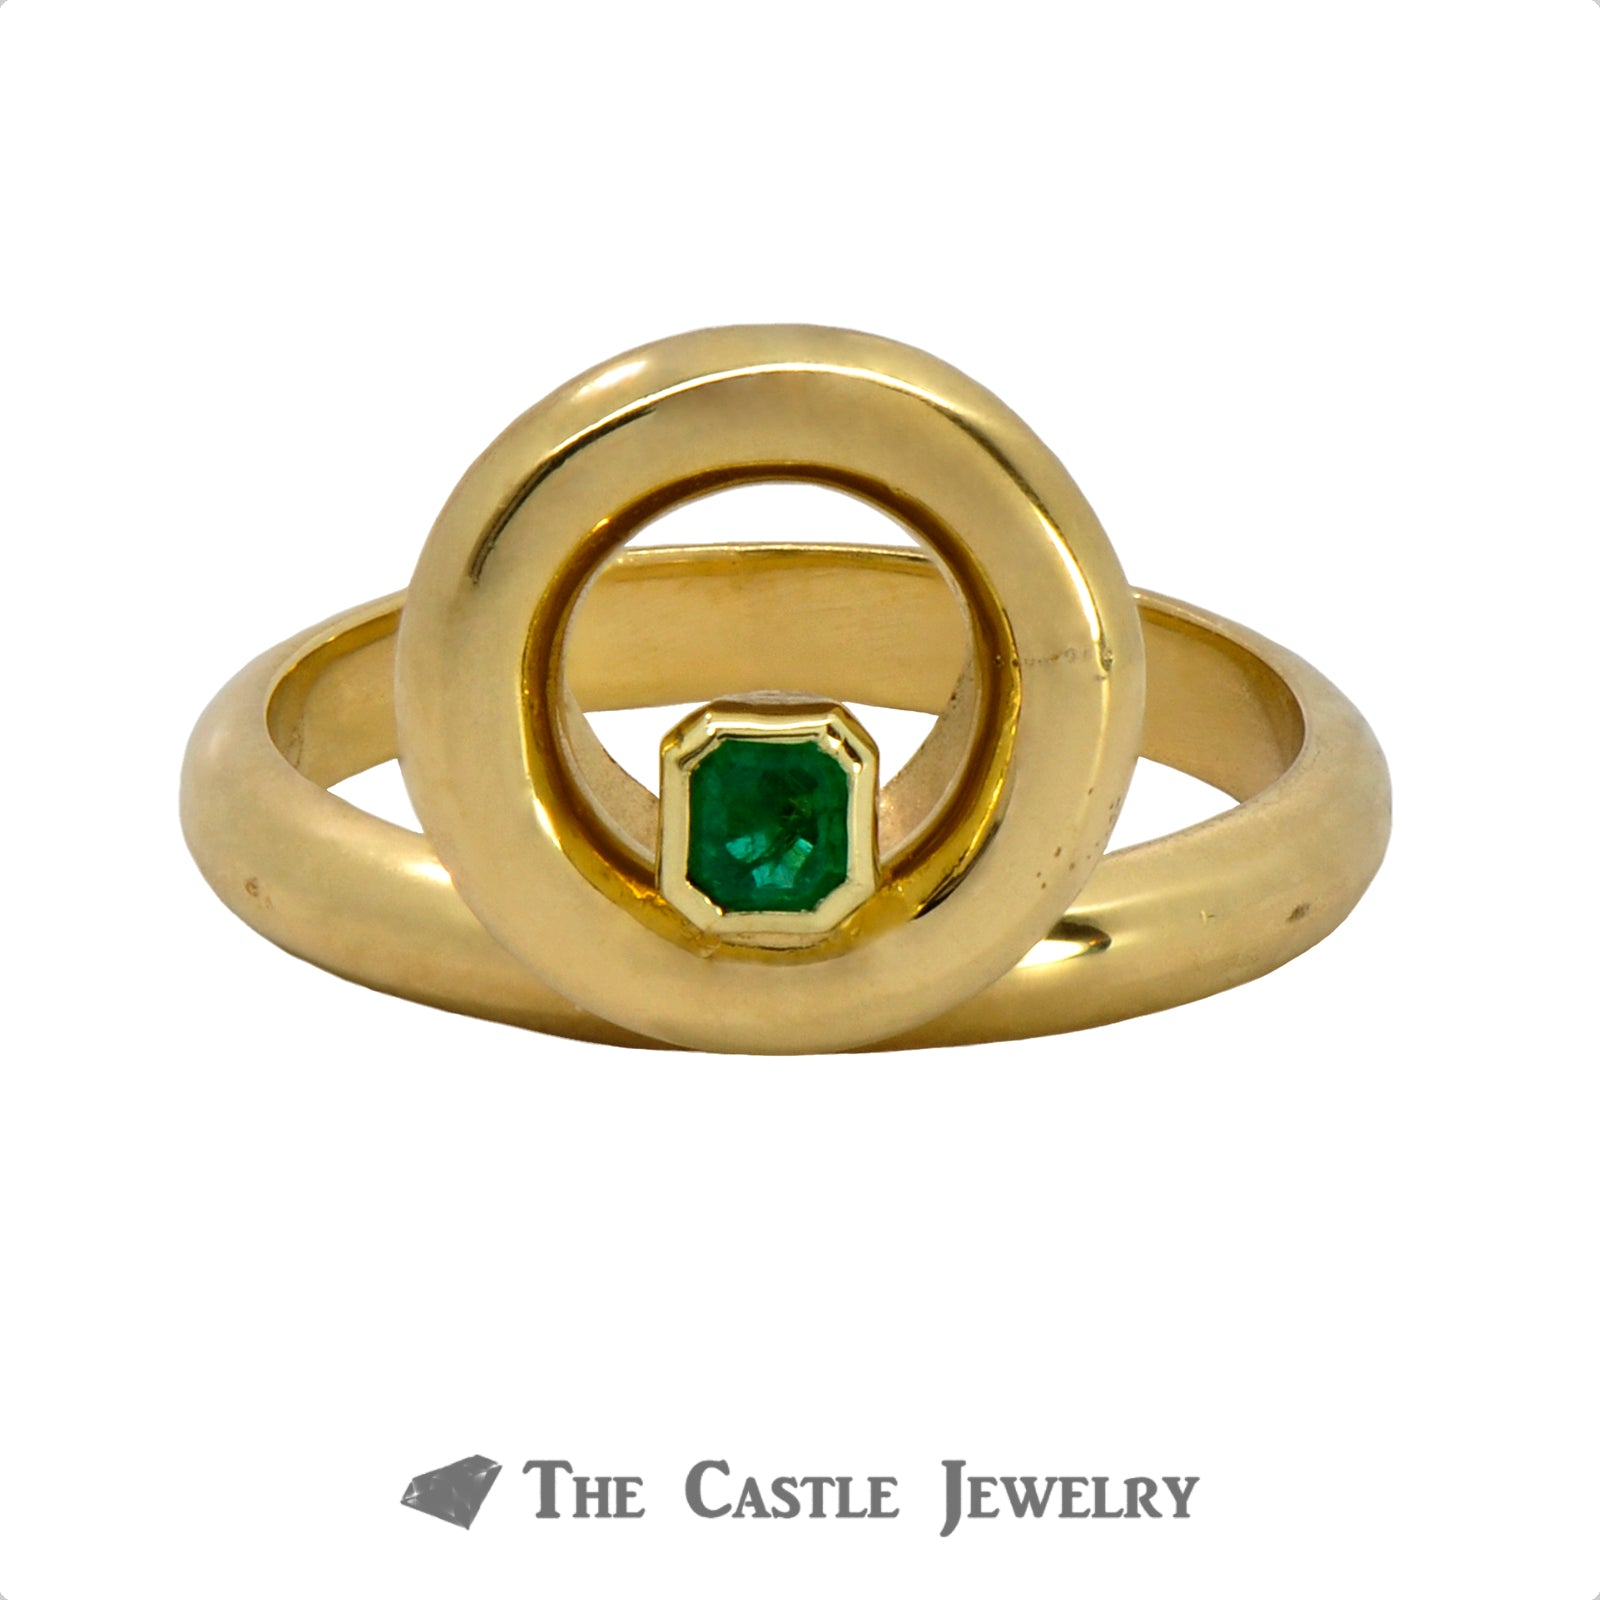 Unique Circle Designed Ring with Emerald Cut Emerald Crafted in 18k Yellow Gold